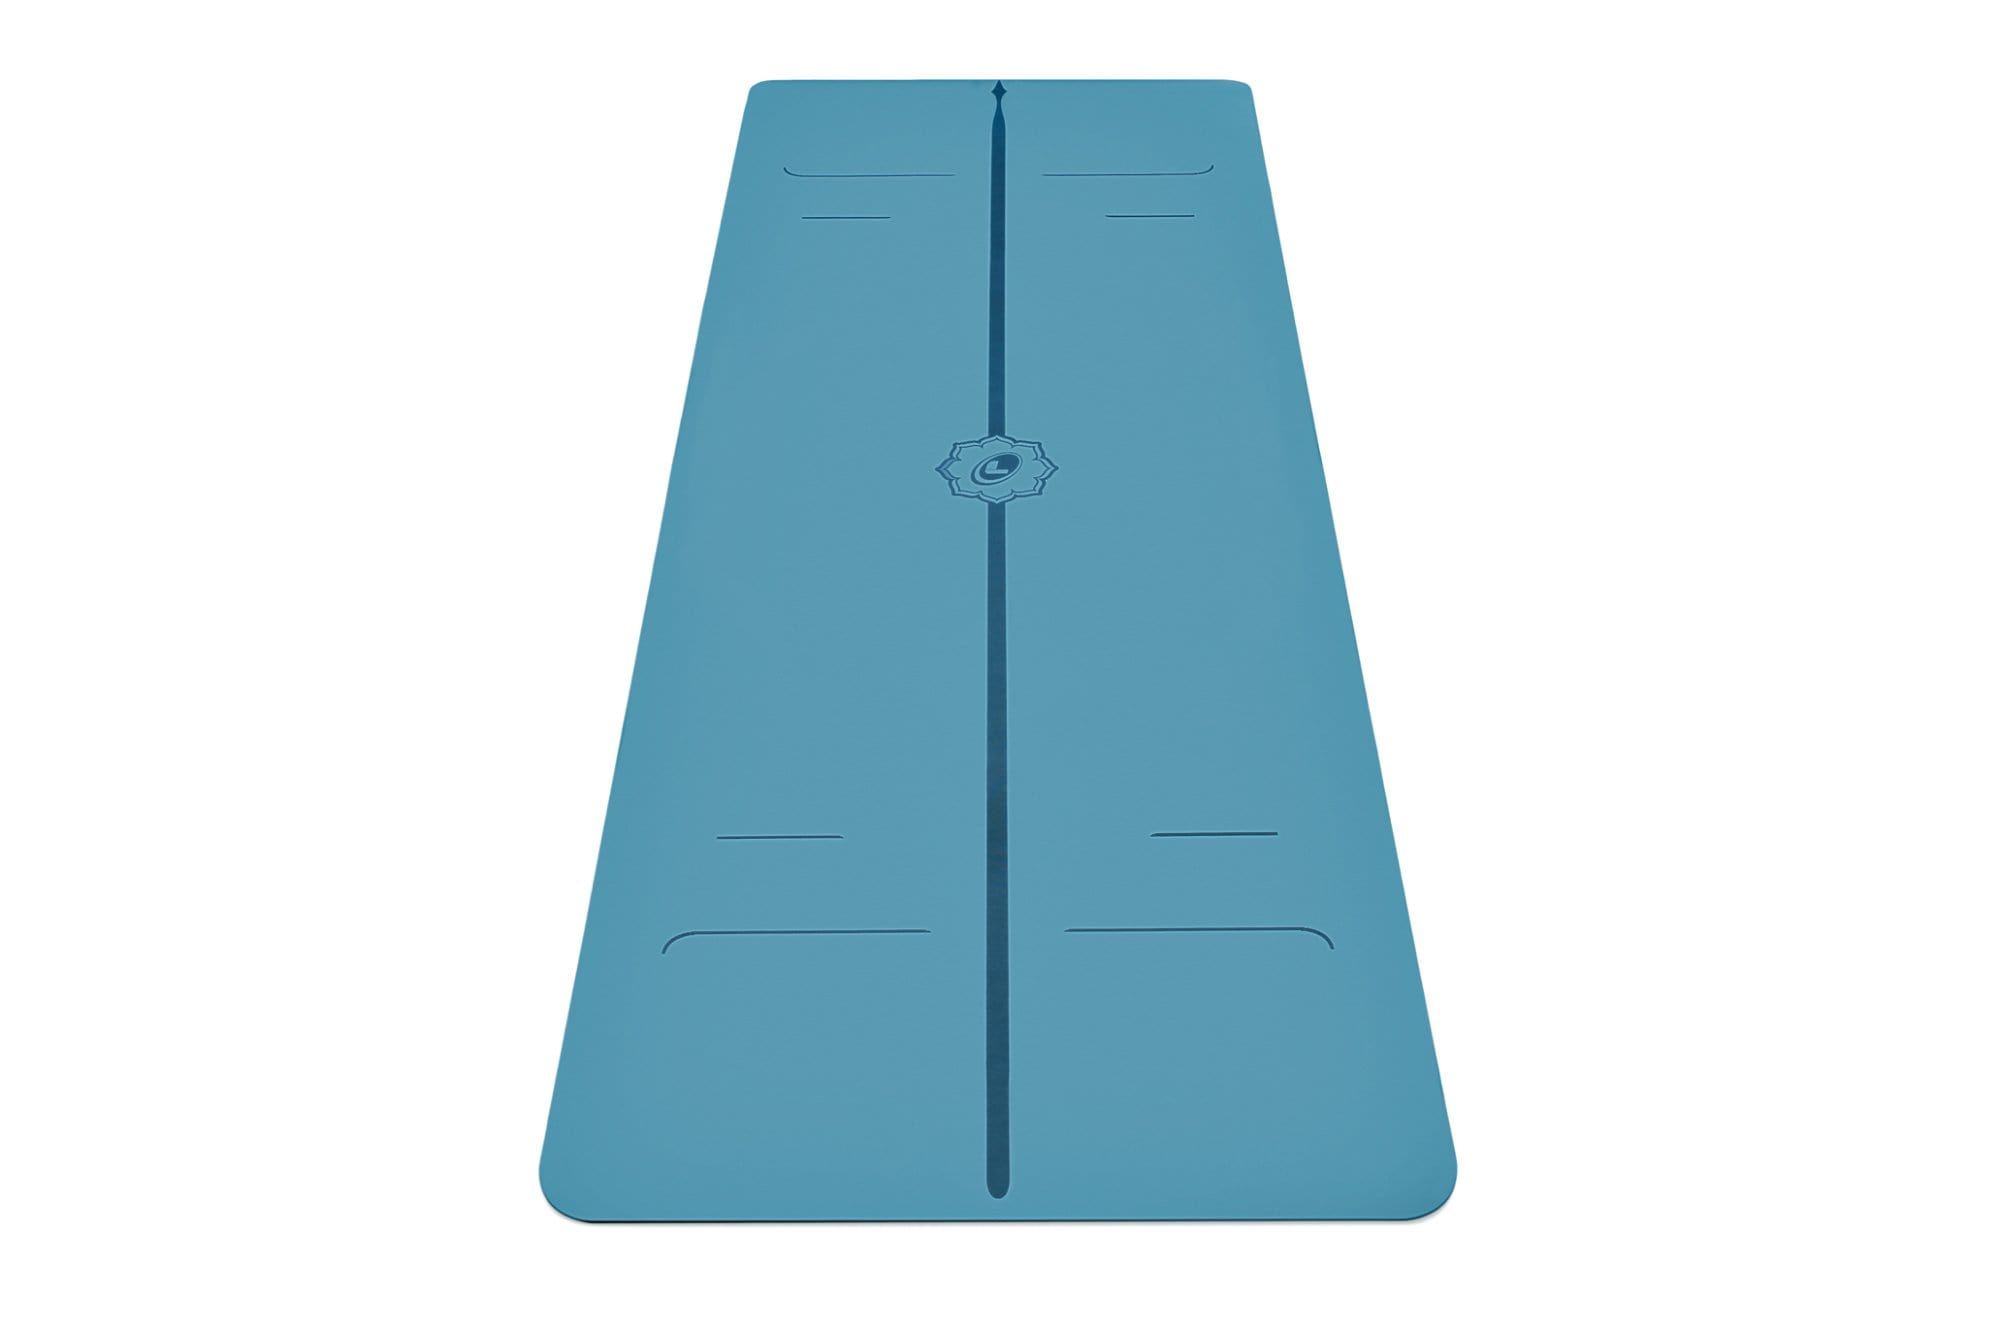 Portrait view of blue Evolve Yoga mat from Liforme